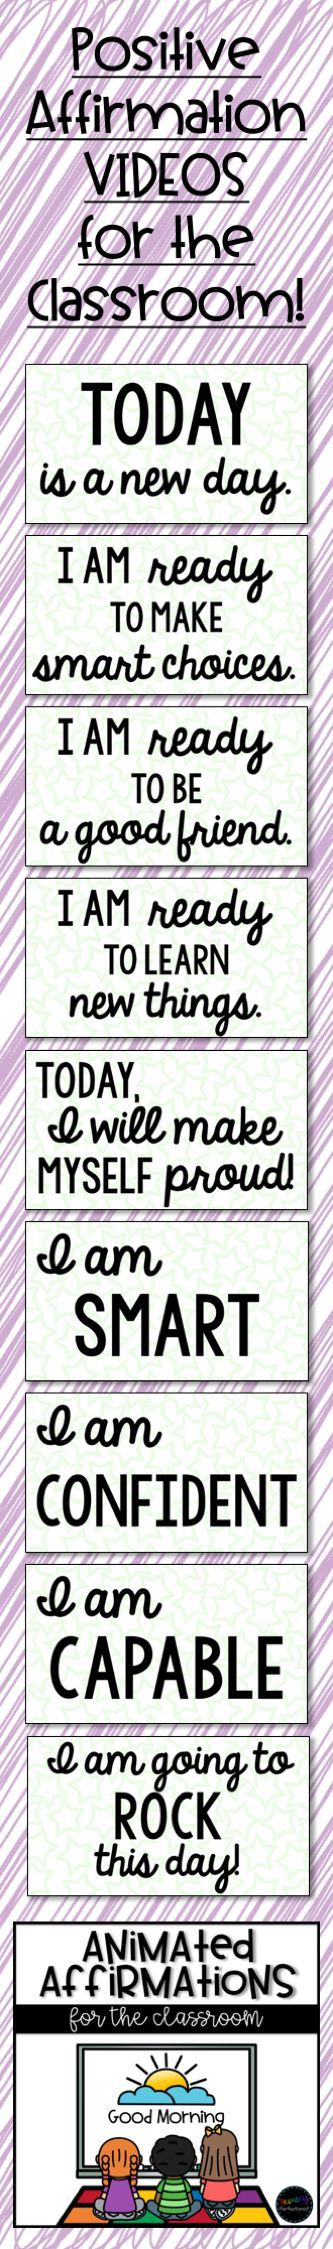 Positive Classrooms Affirmations - GOOD MORNING - Chants for